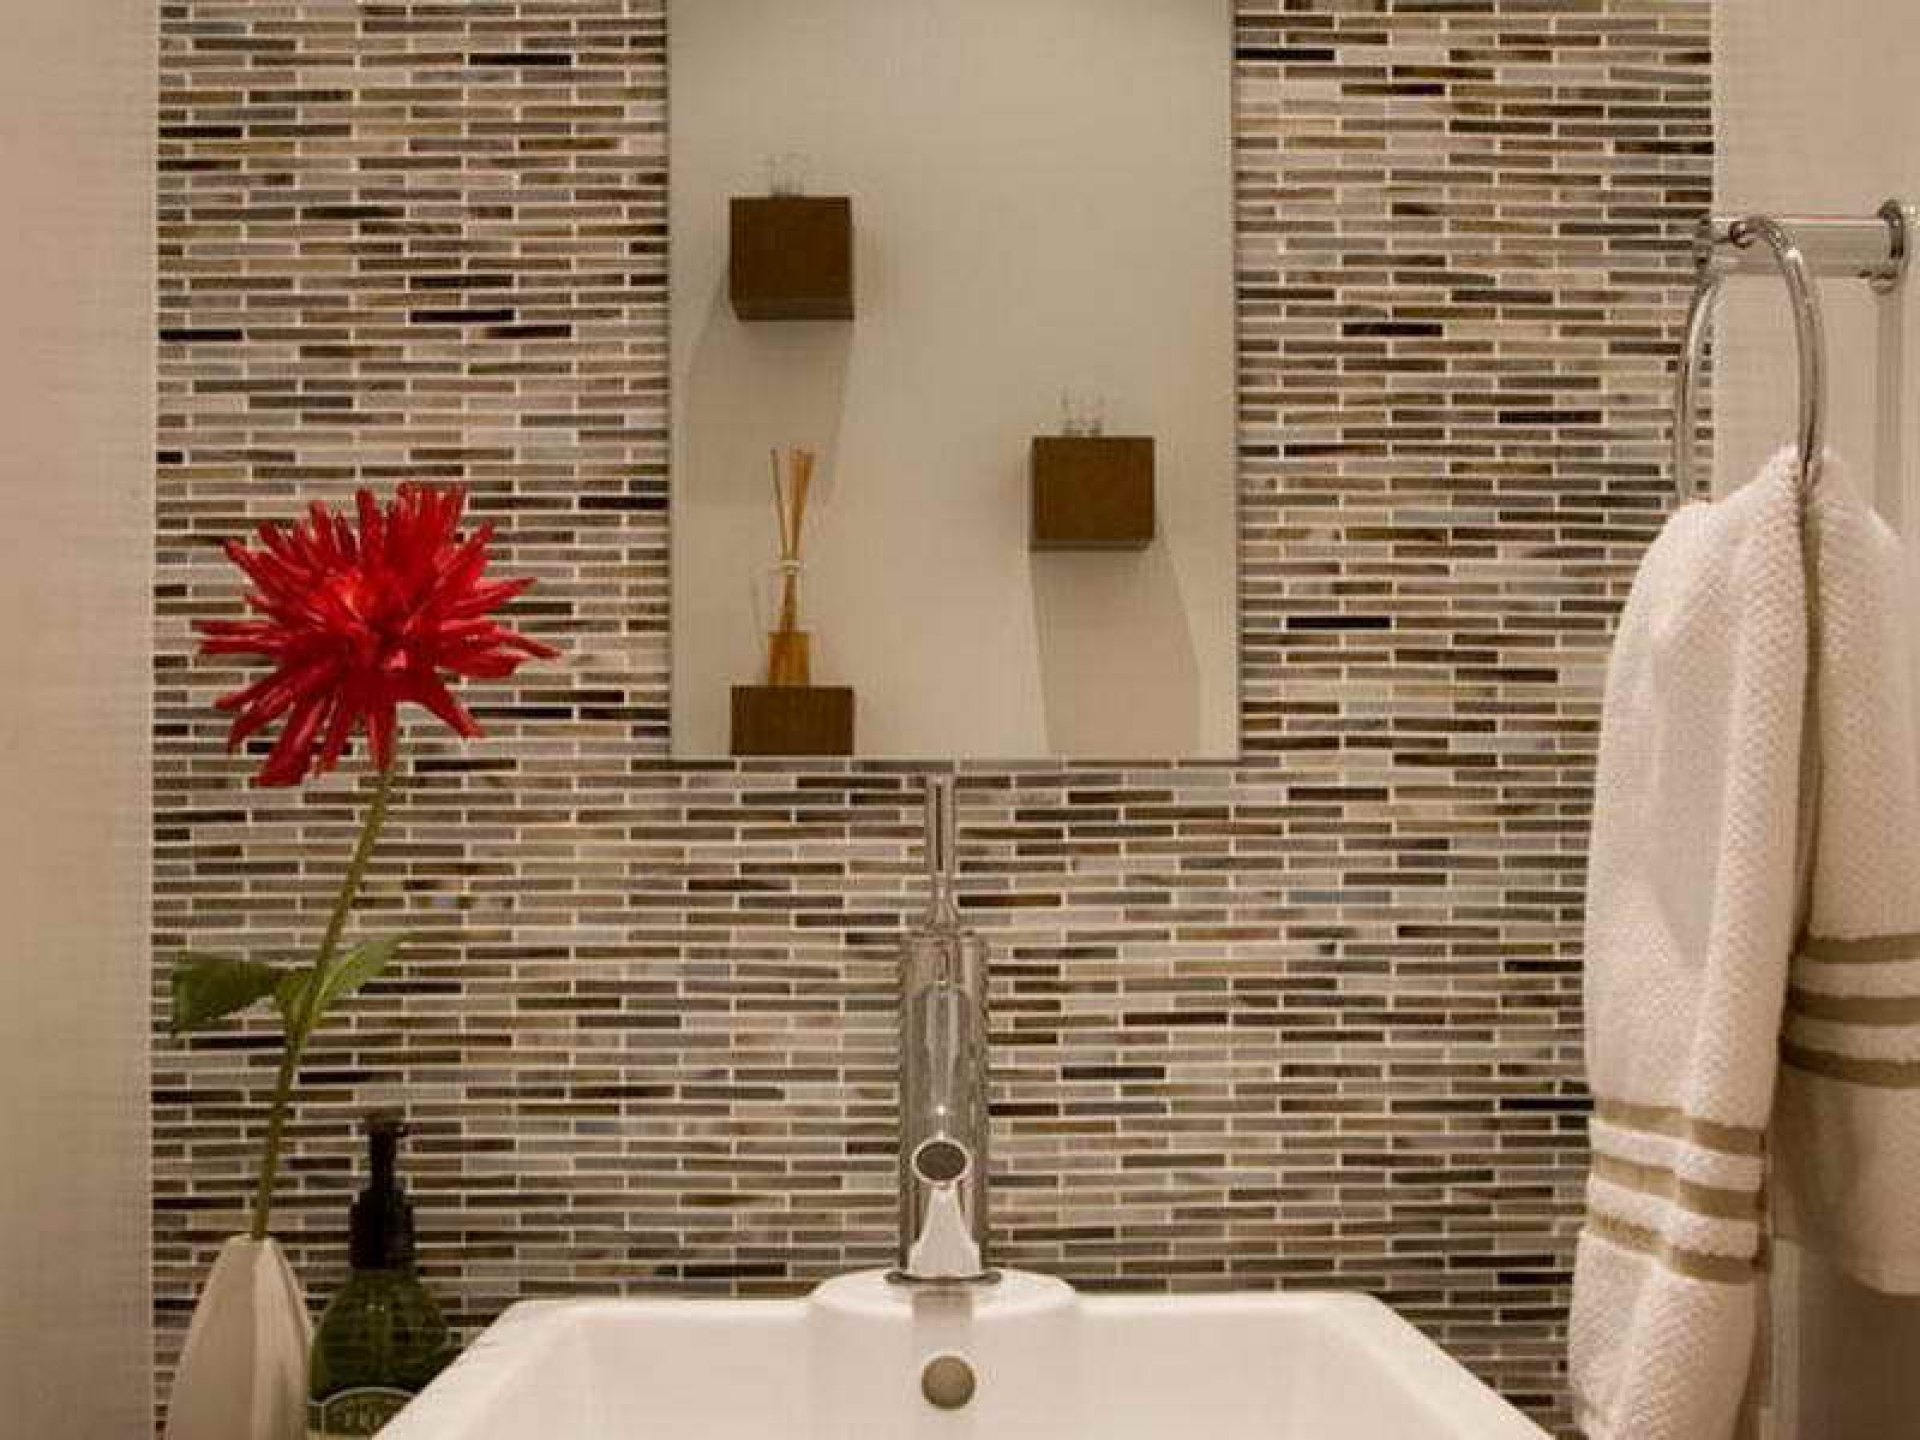 Bathroom Remodel Tucson Style bathroom remodeling tucson az - free in home estimates